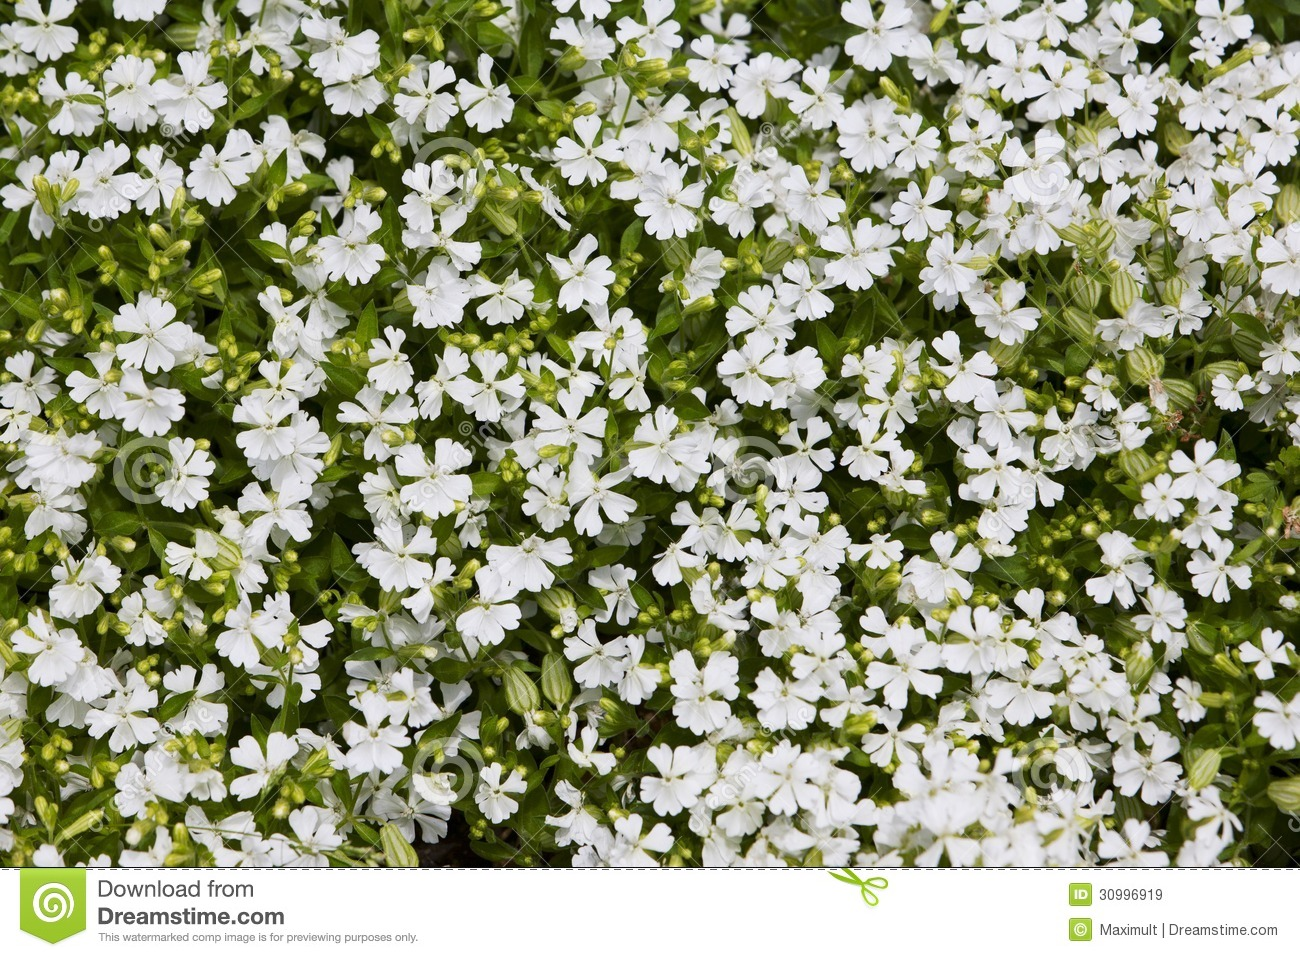 White Yard Flowers 16 Wide Wallpaper Hdflowerwallpaper